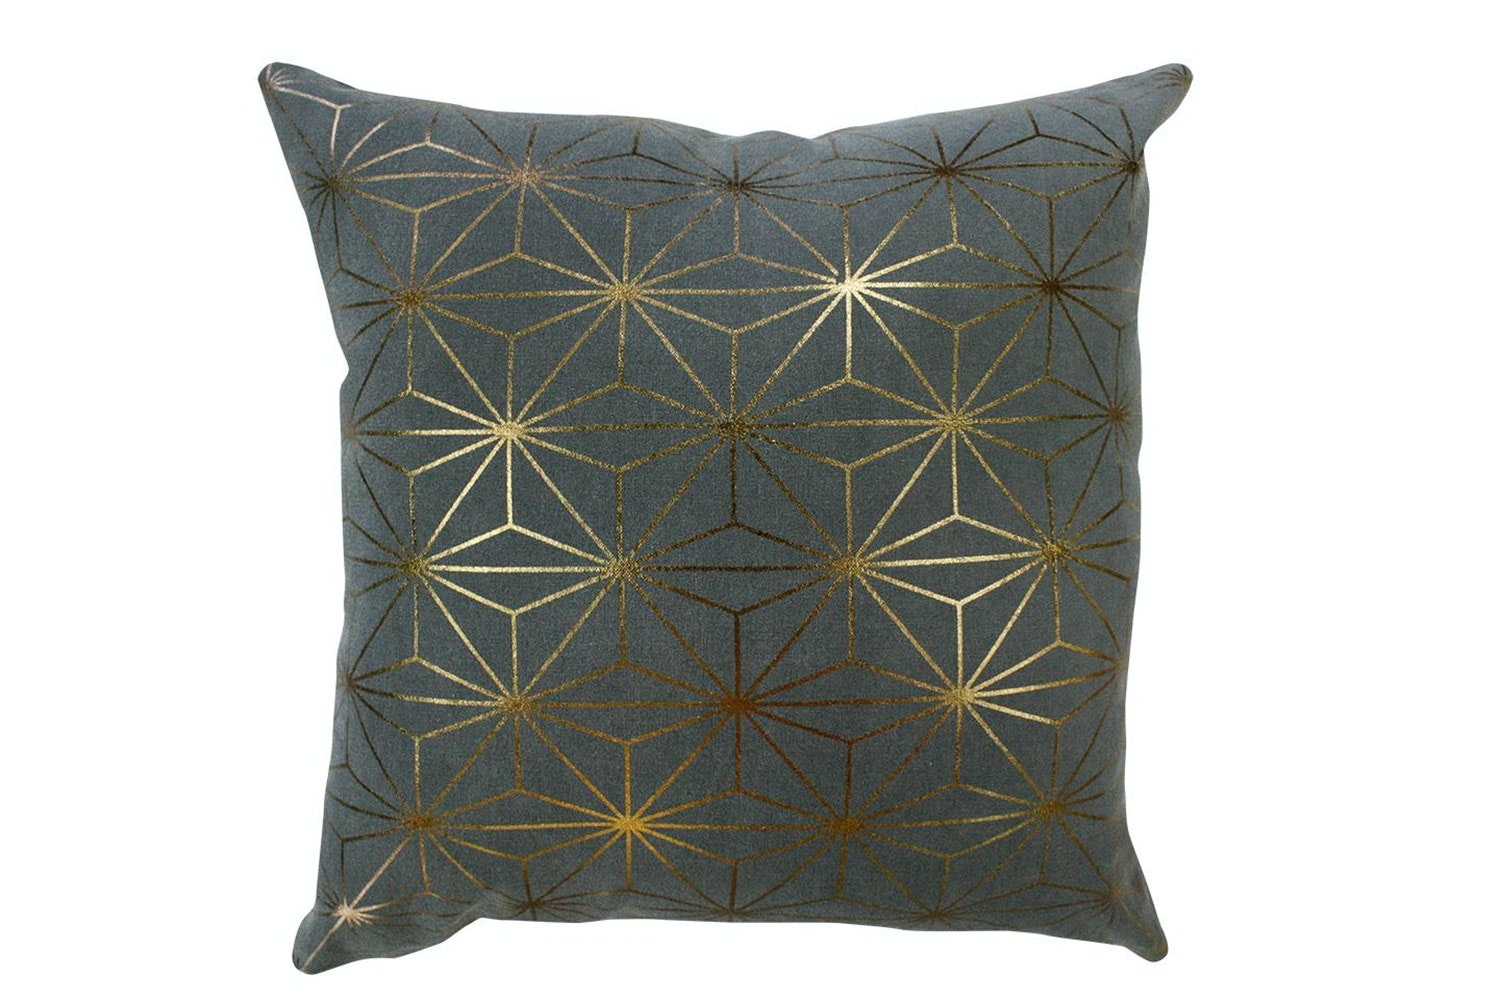 Stella Copper Charcoal Cushion - Limon